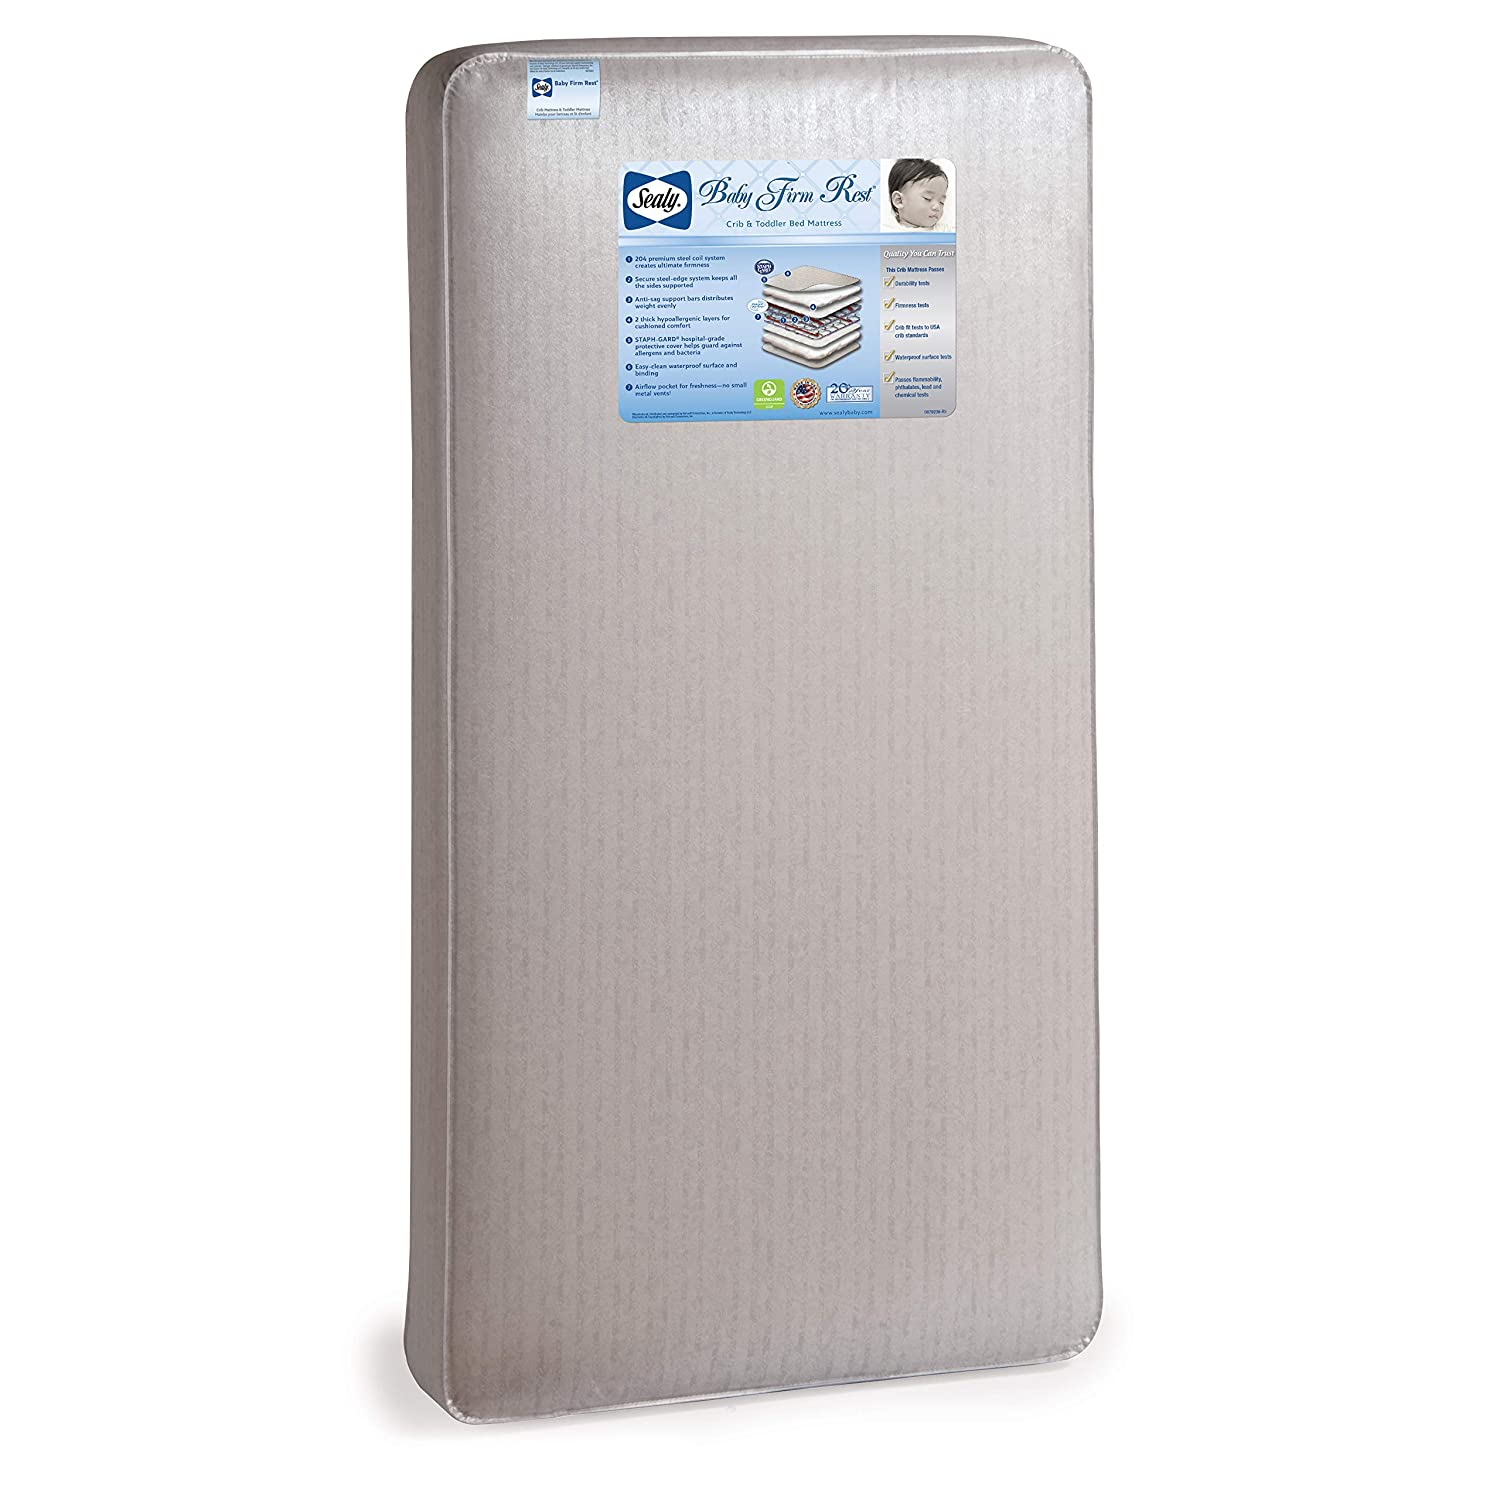 Sealy Baby Firm Rest Antibacterial Crib Mattress